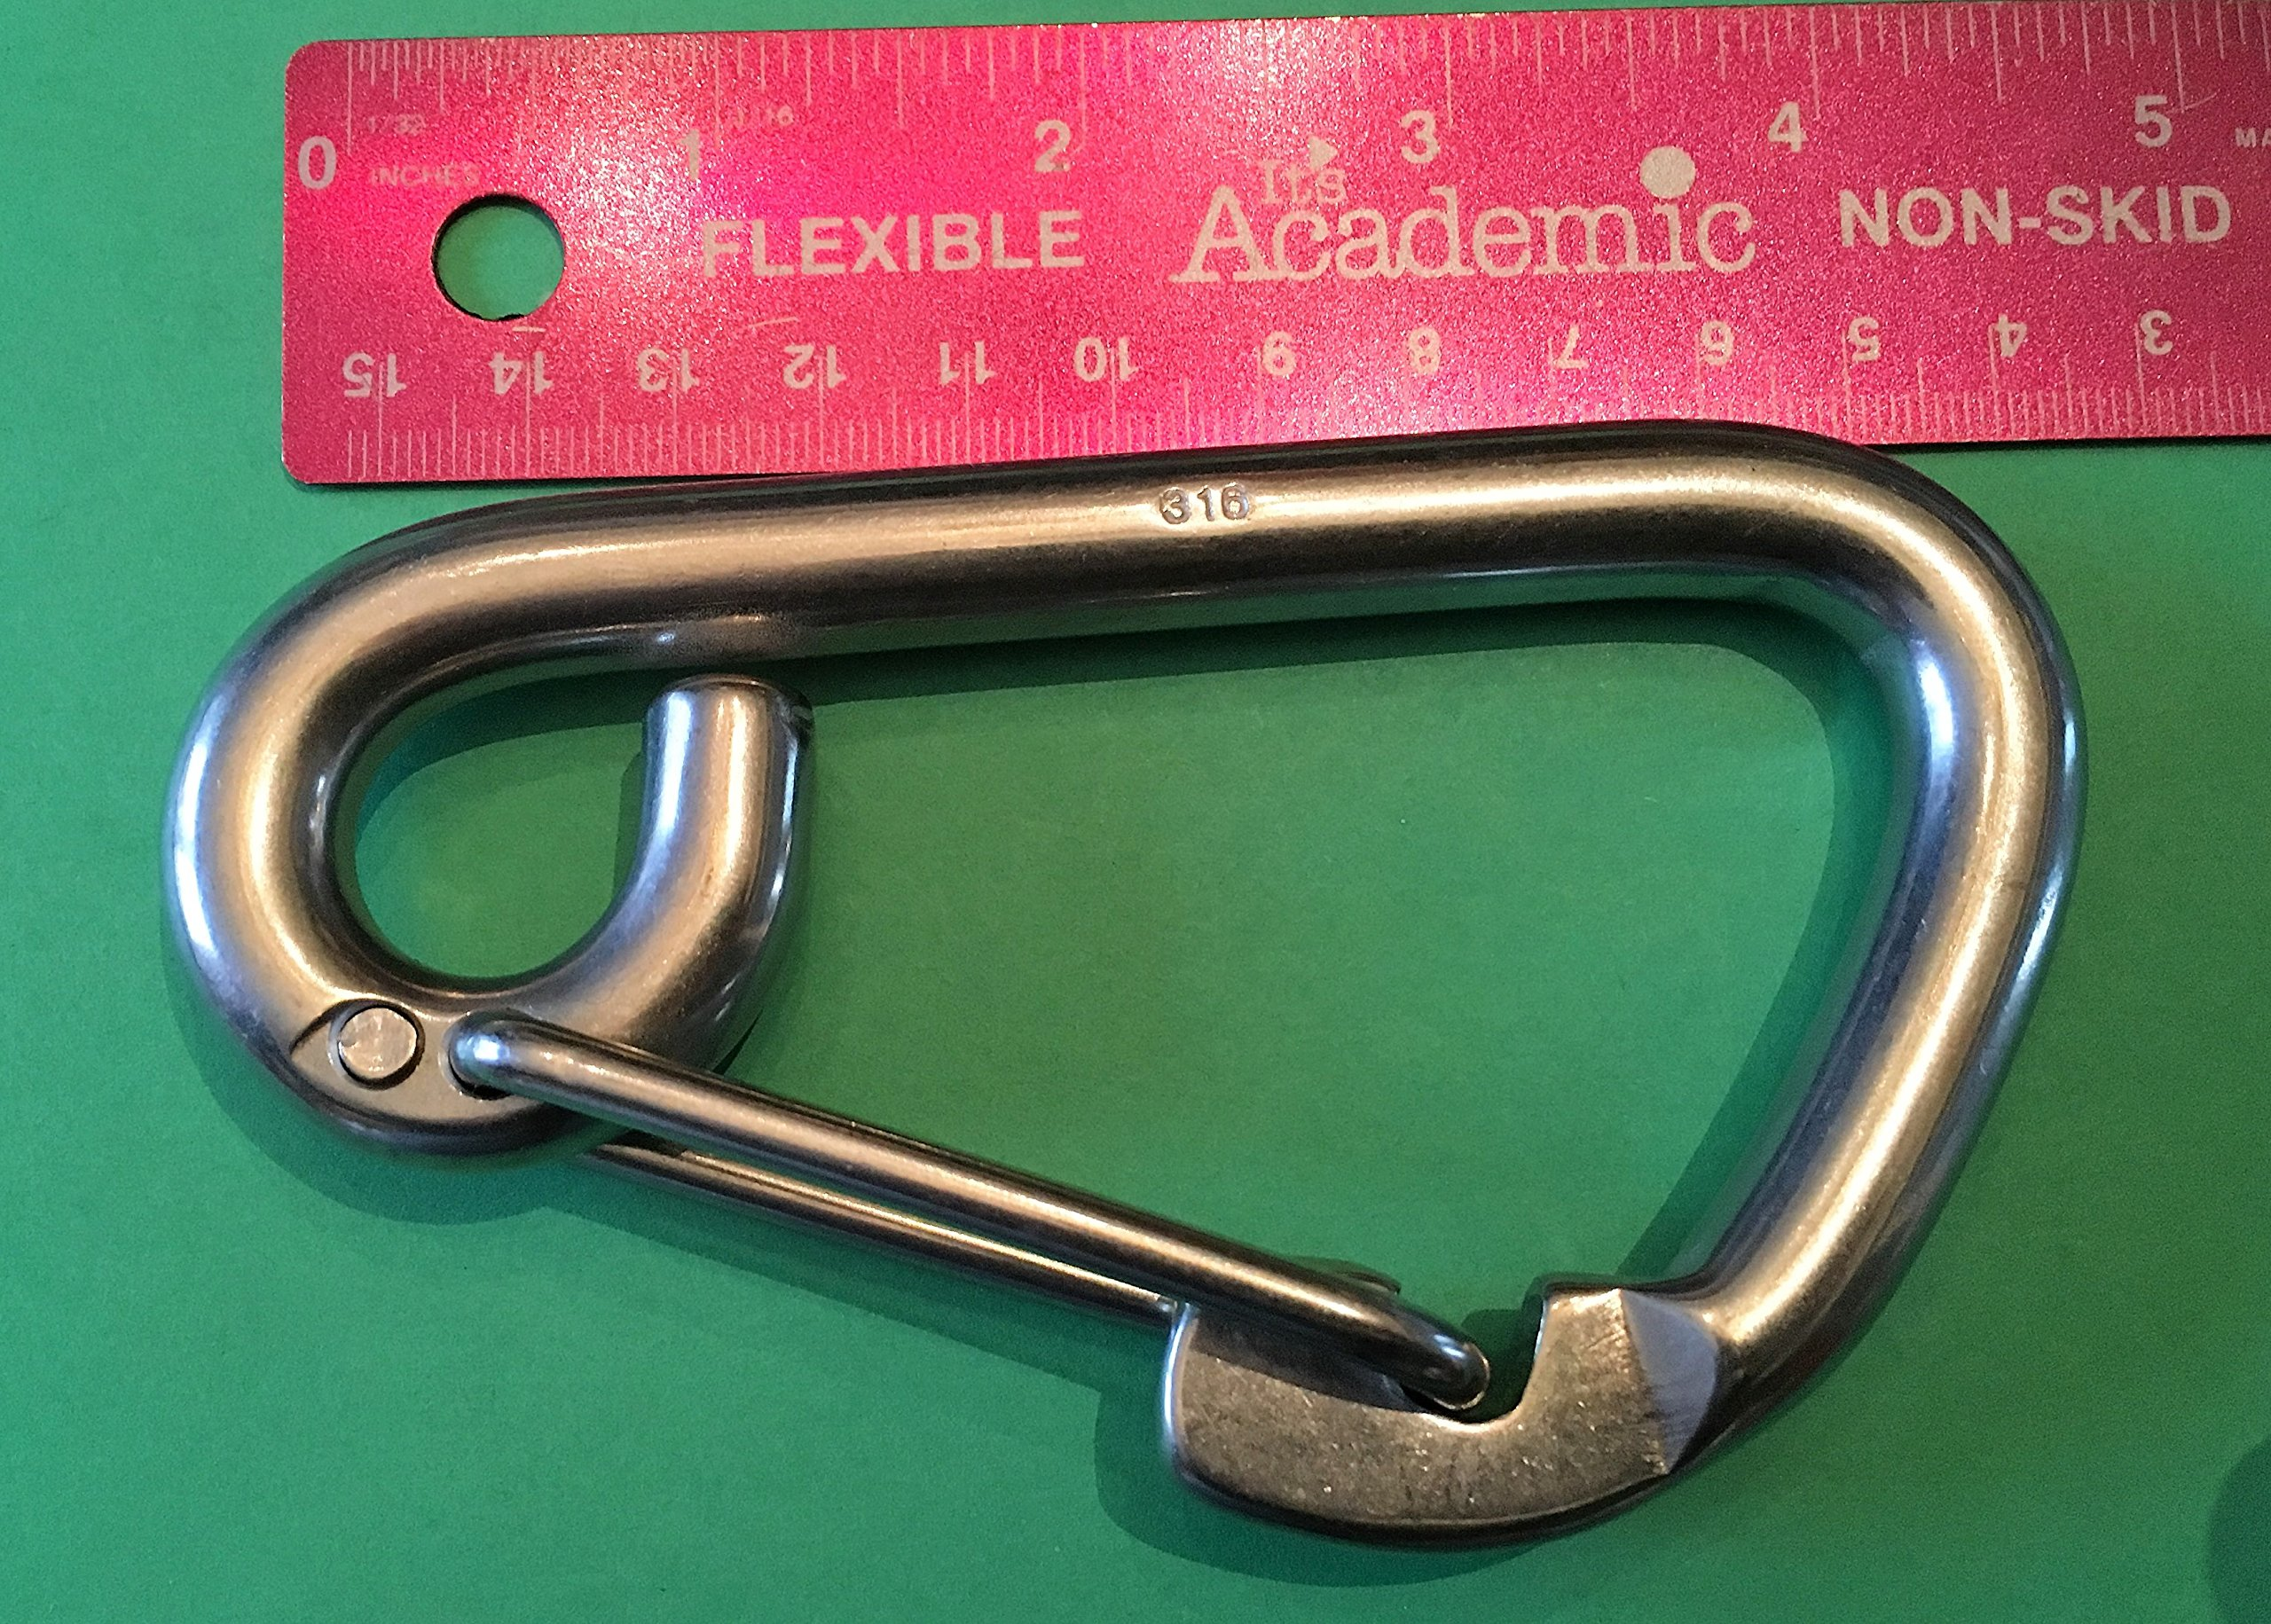 Stainless Steel 316 Spring Hook Carabiner 1/2'' (12mm) Marine Grade Safety Clip by US Stainless (Image #2)